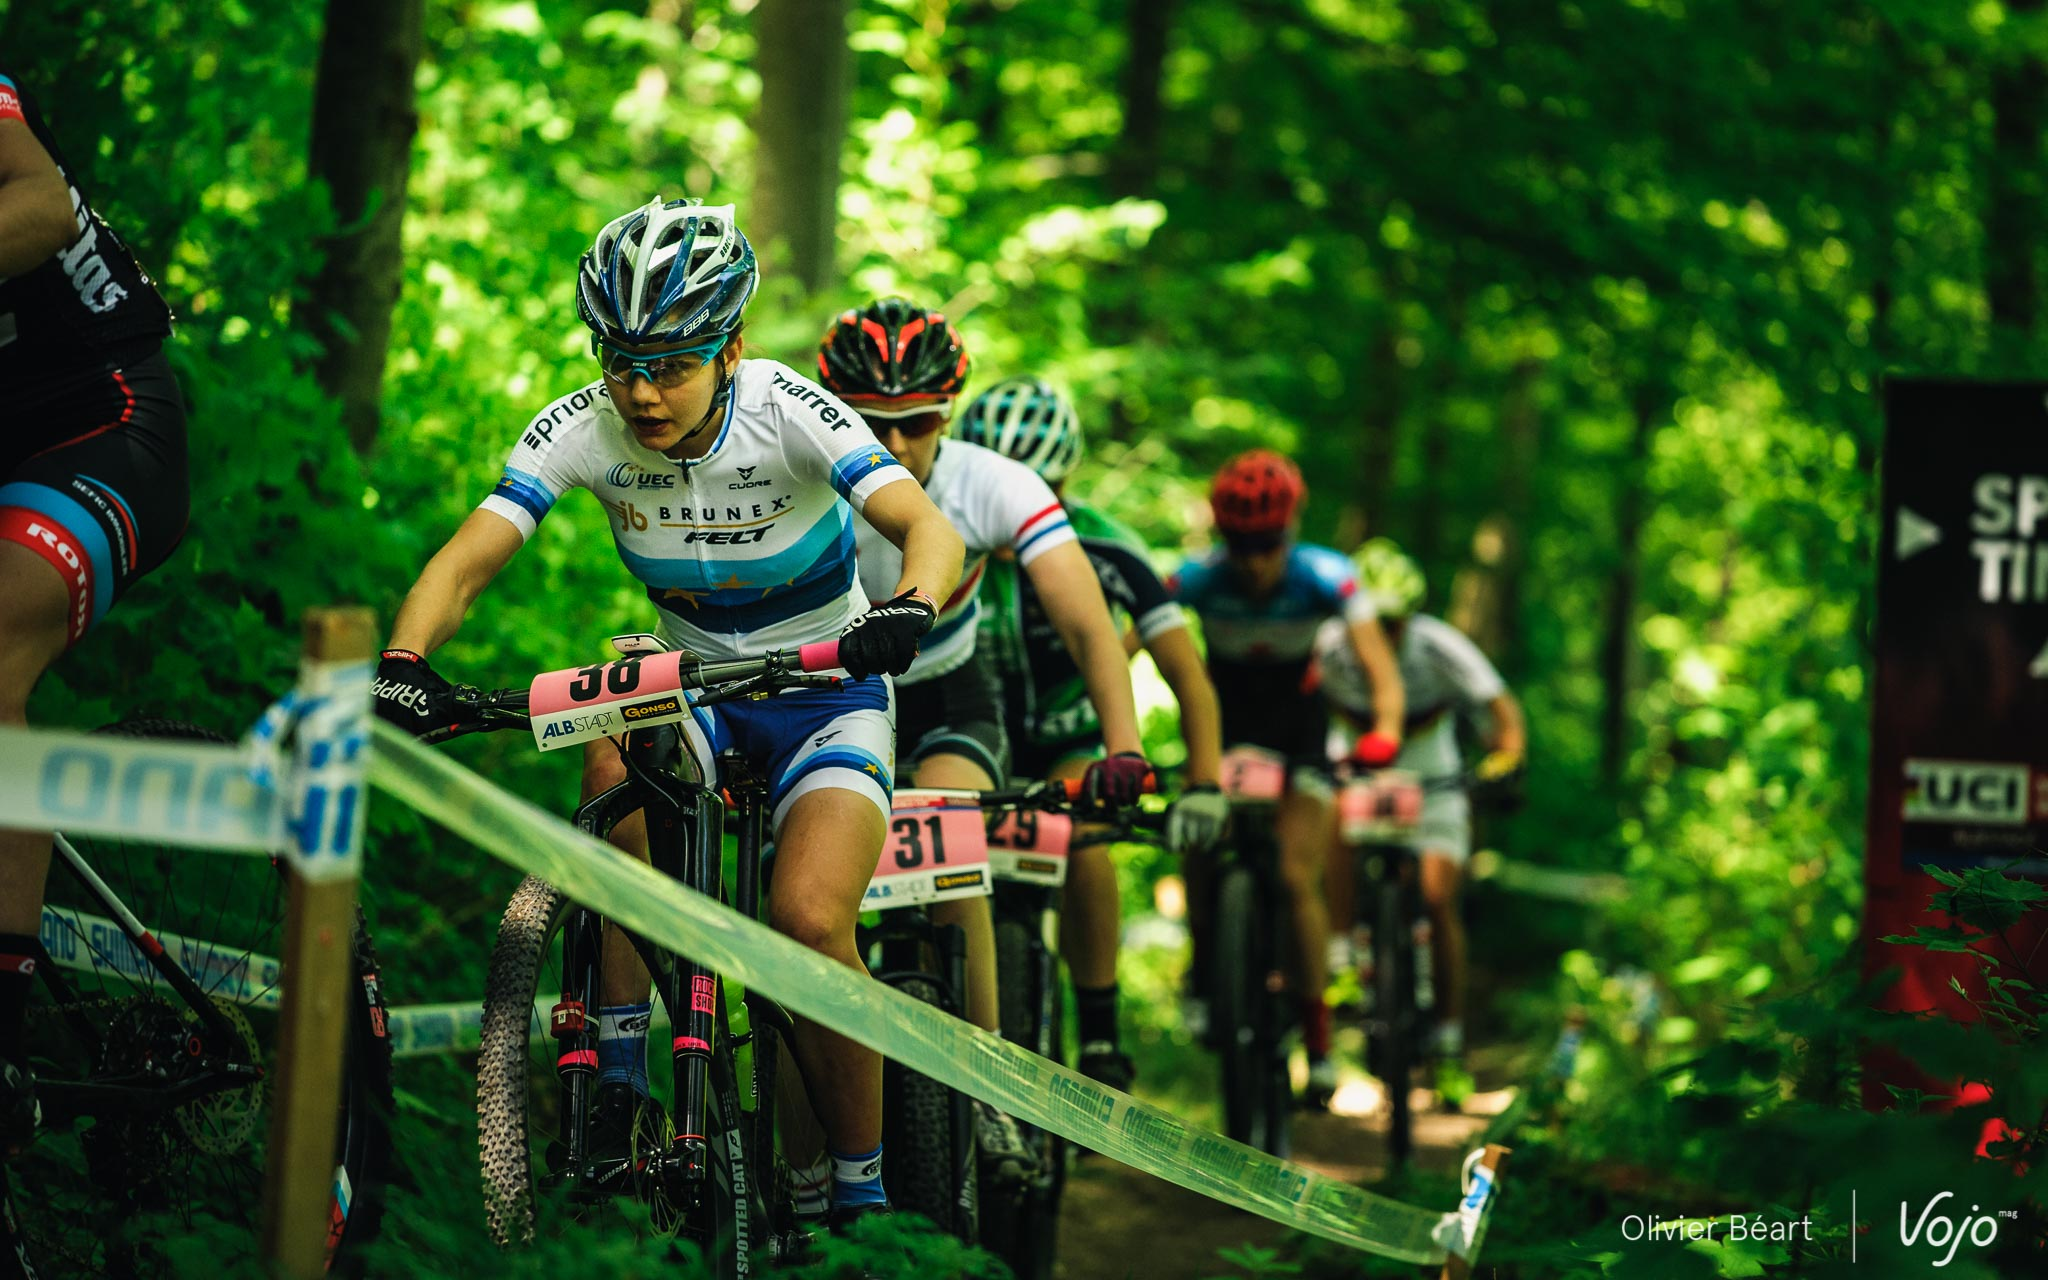 World_Cup_Albstadt_2016_Women_U23_Dames_Copyright_OBeart_VojoMag-5